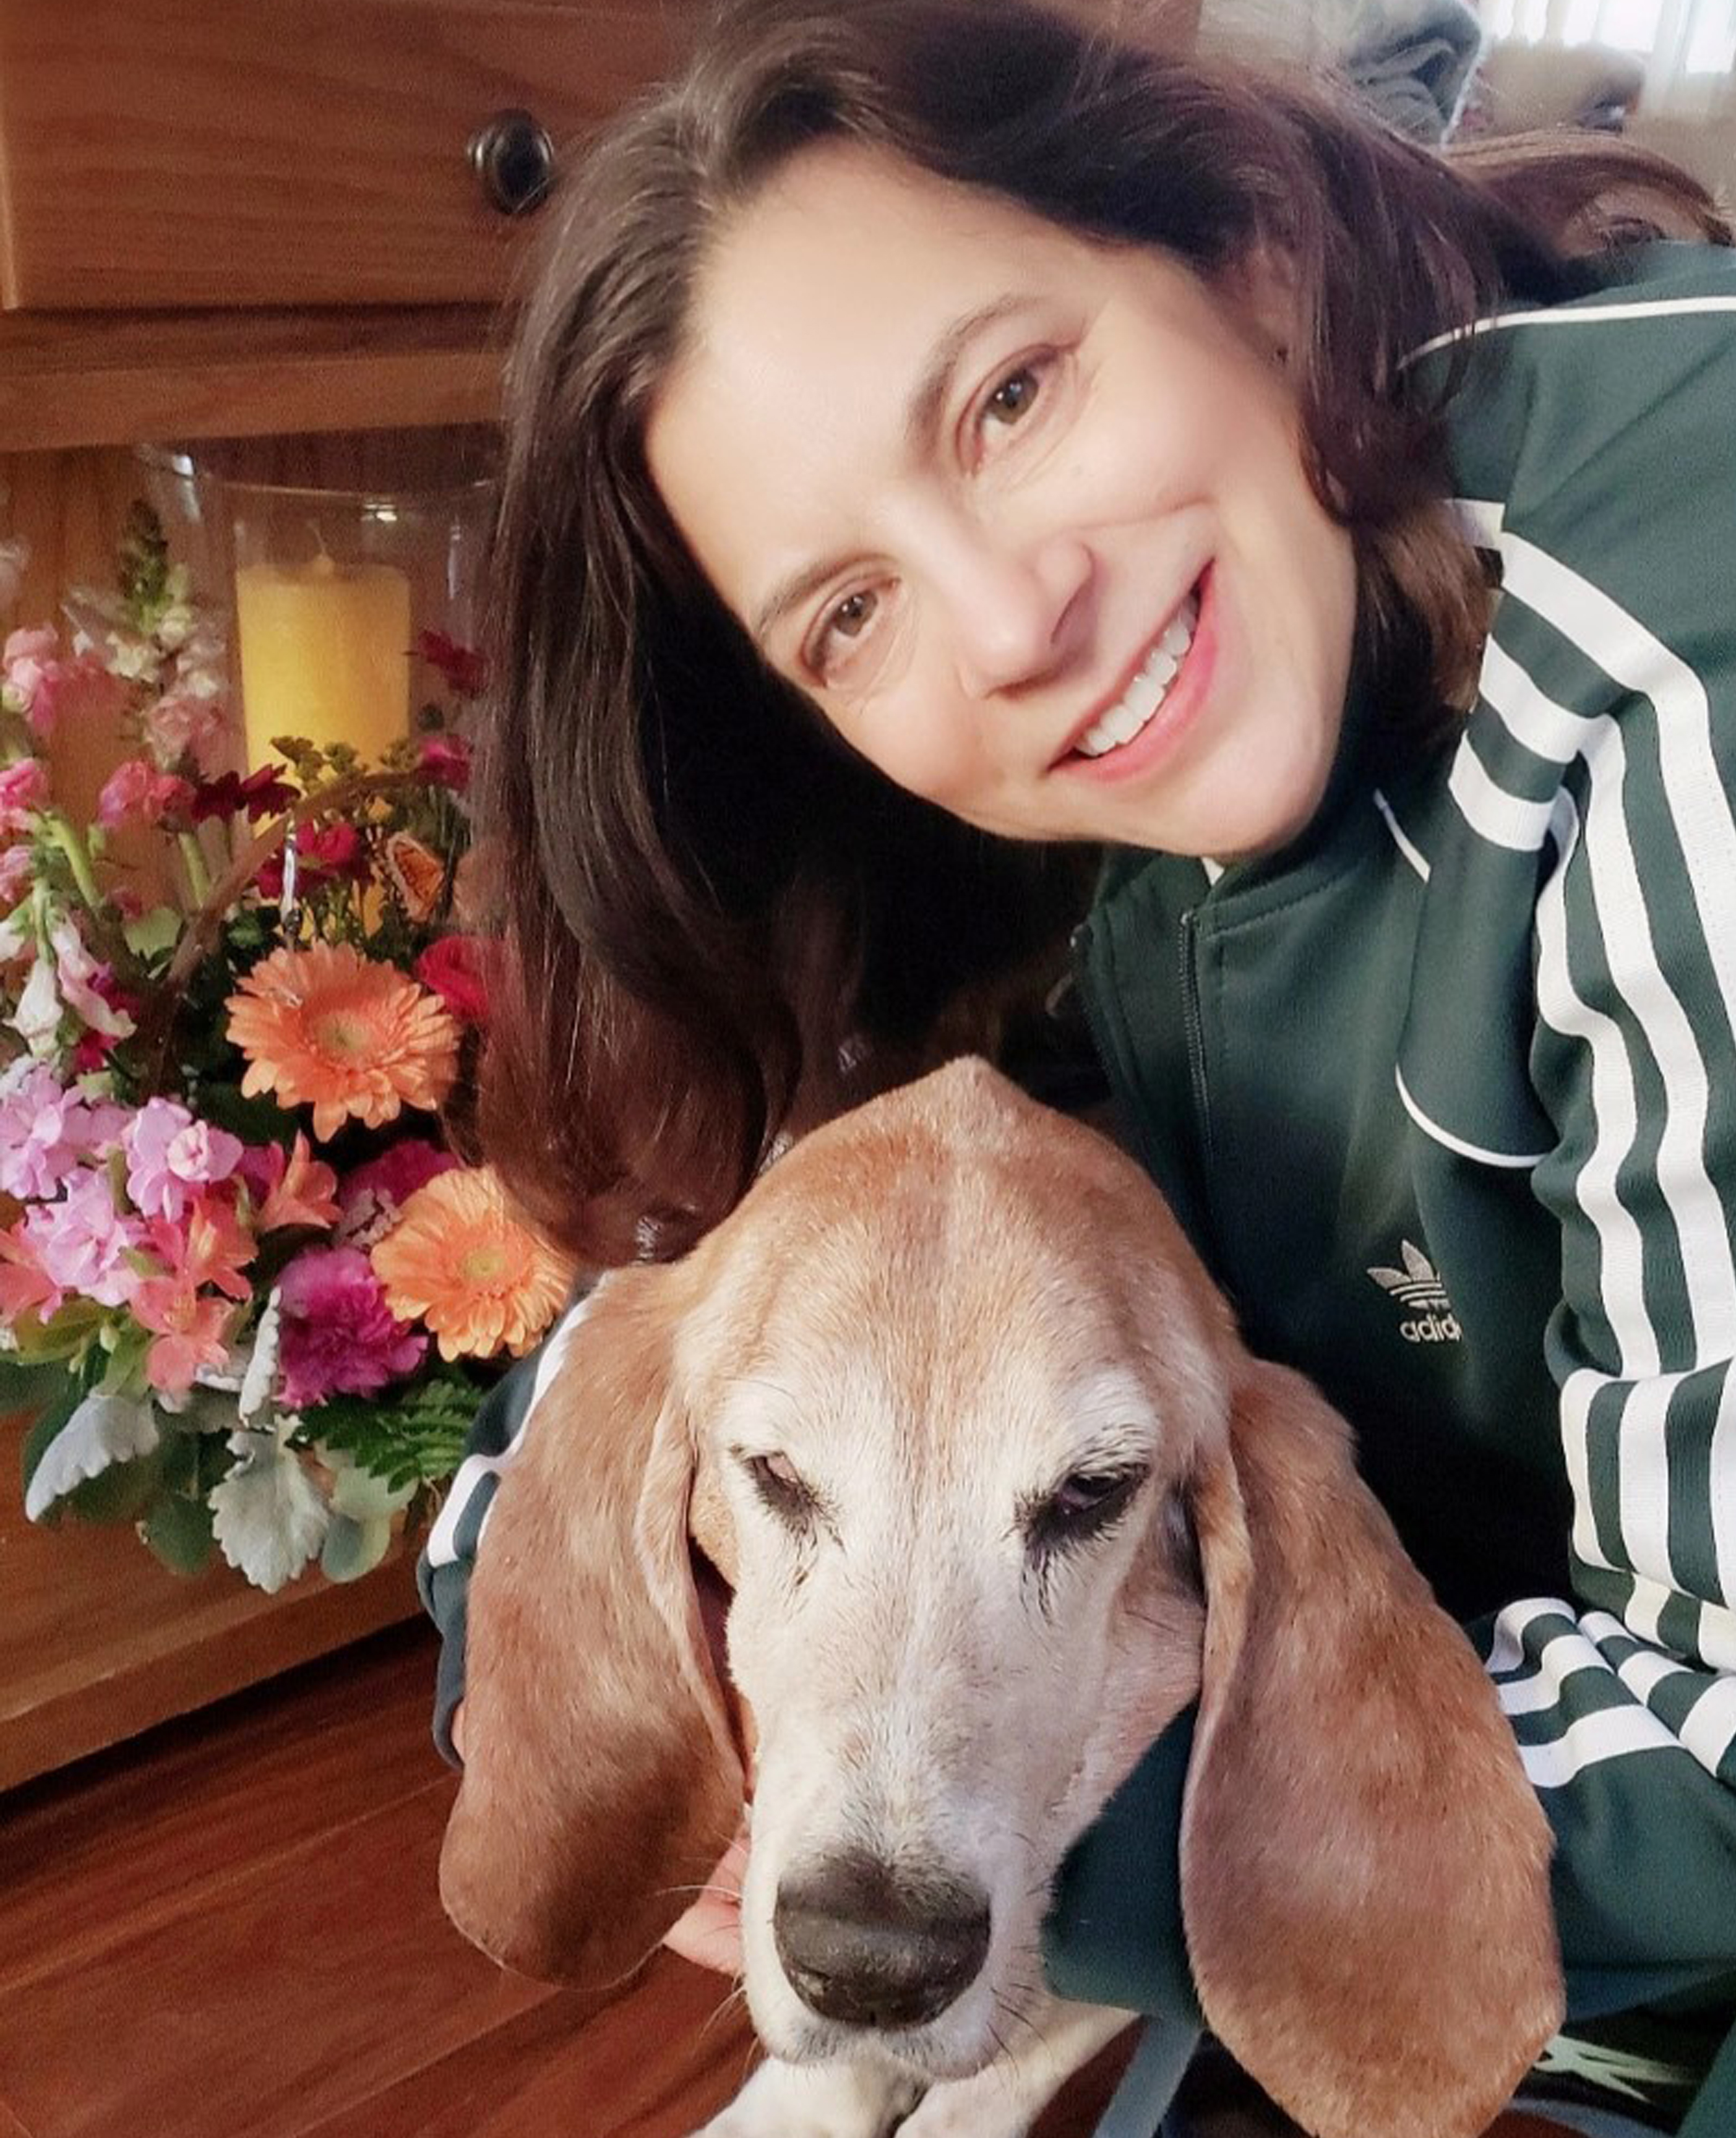 Dr. Laura Gonzales hugs a sweet bassett hound and smiles.